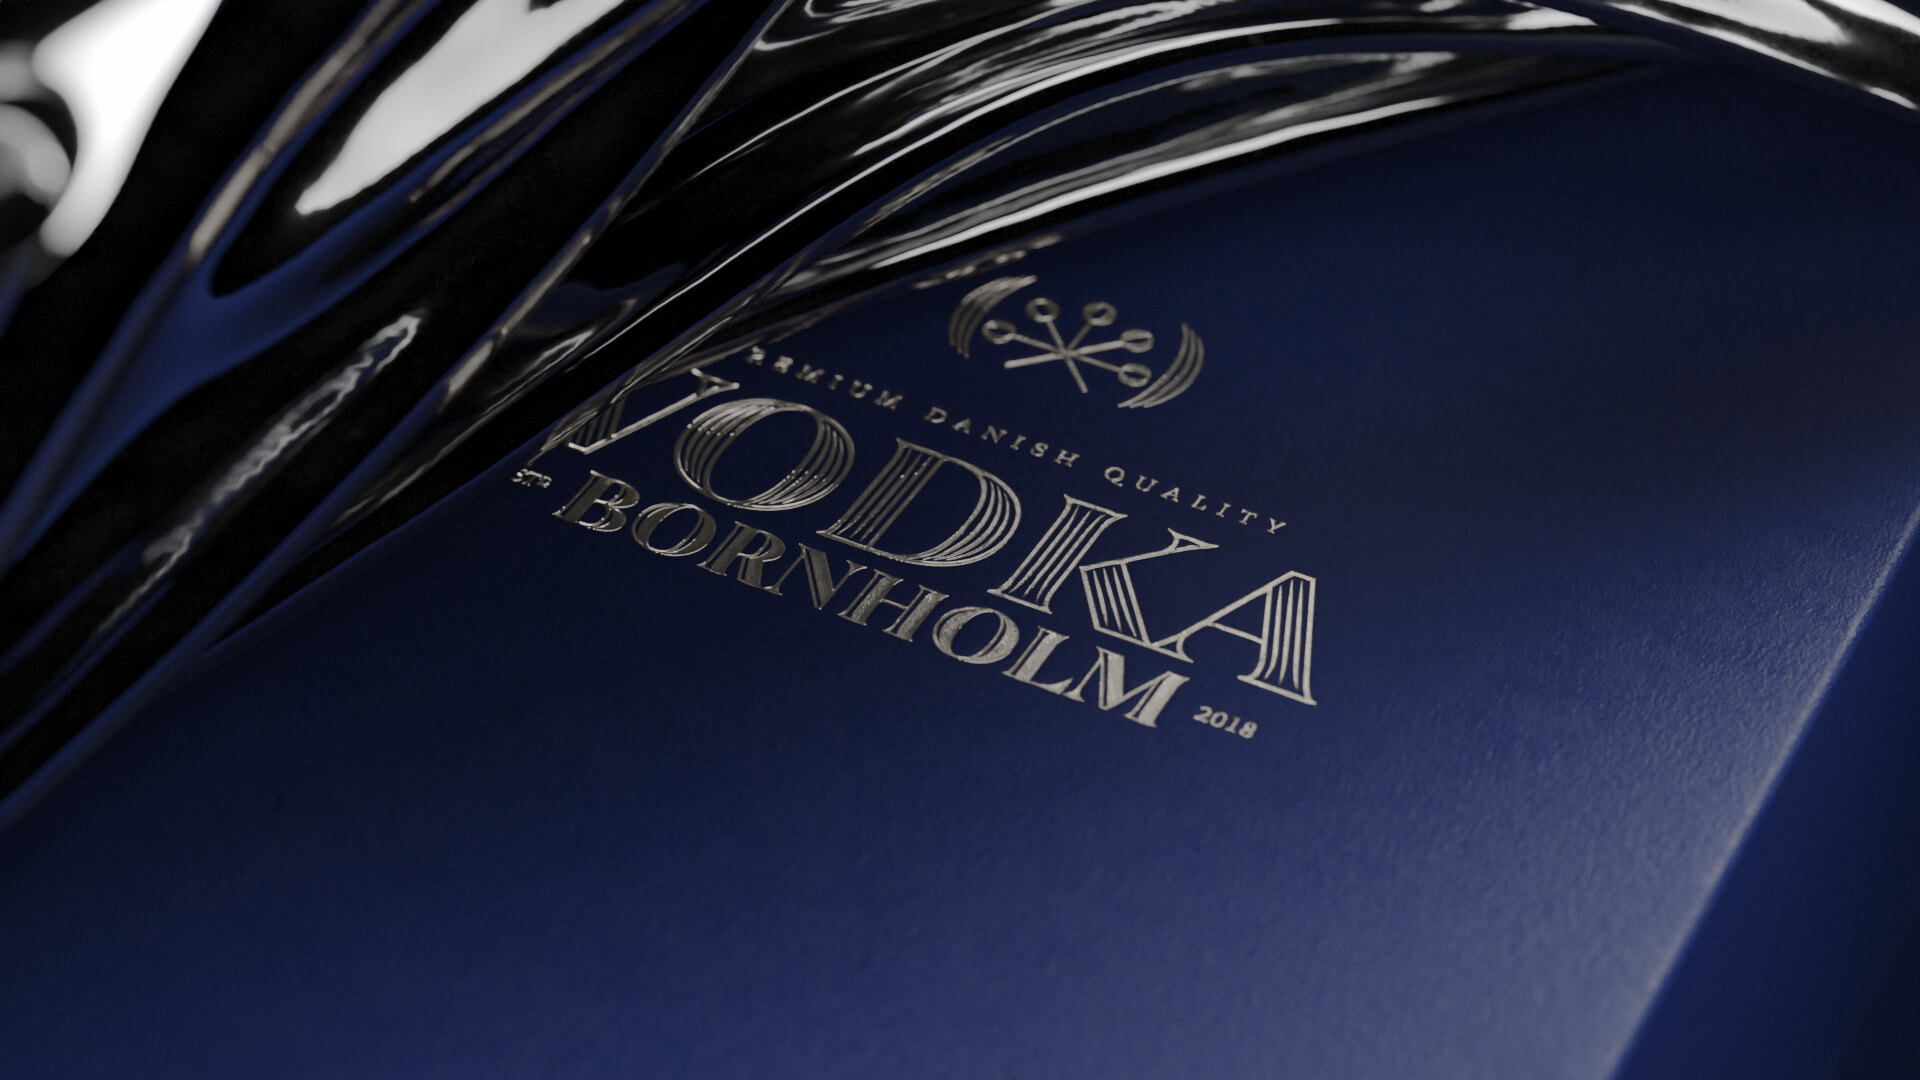 02 Vodka Bornholm Video Commercial 3D Product Vodka Closeup